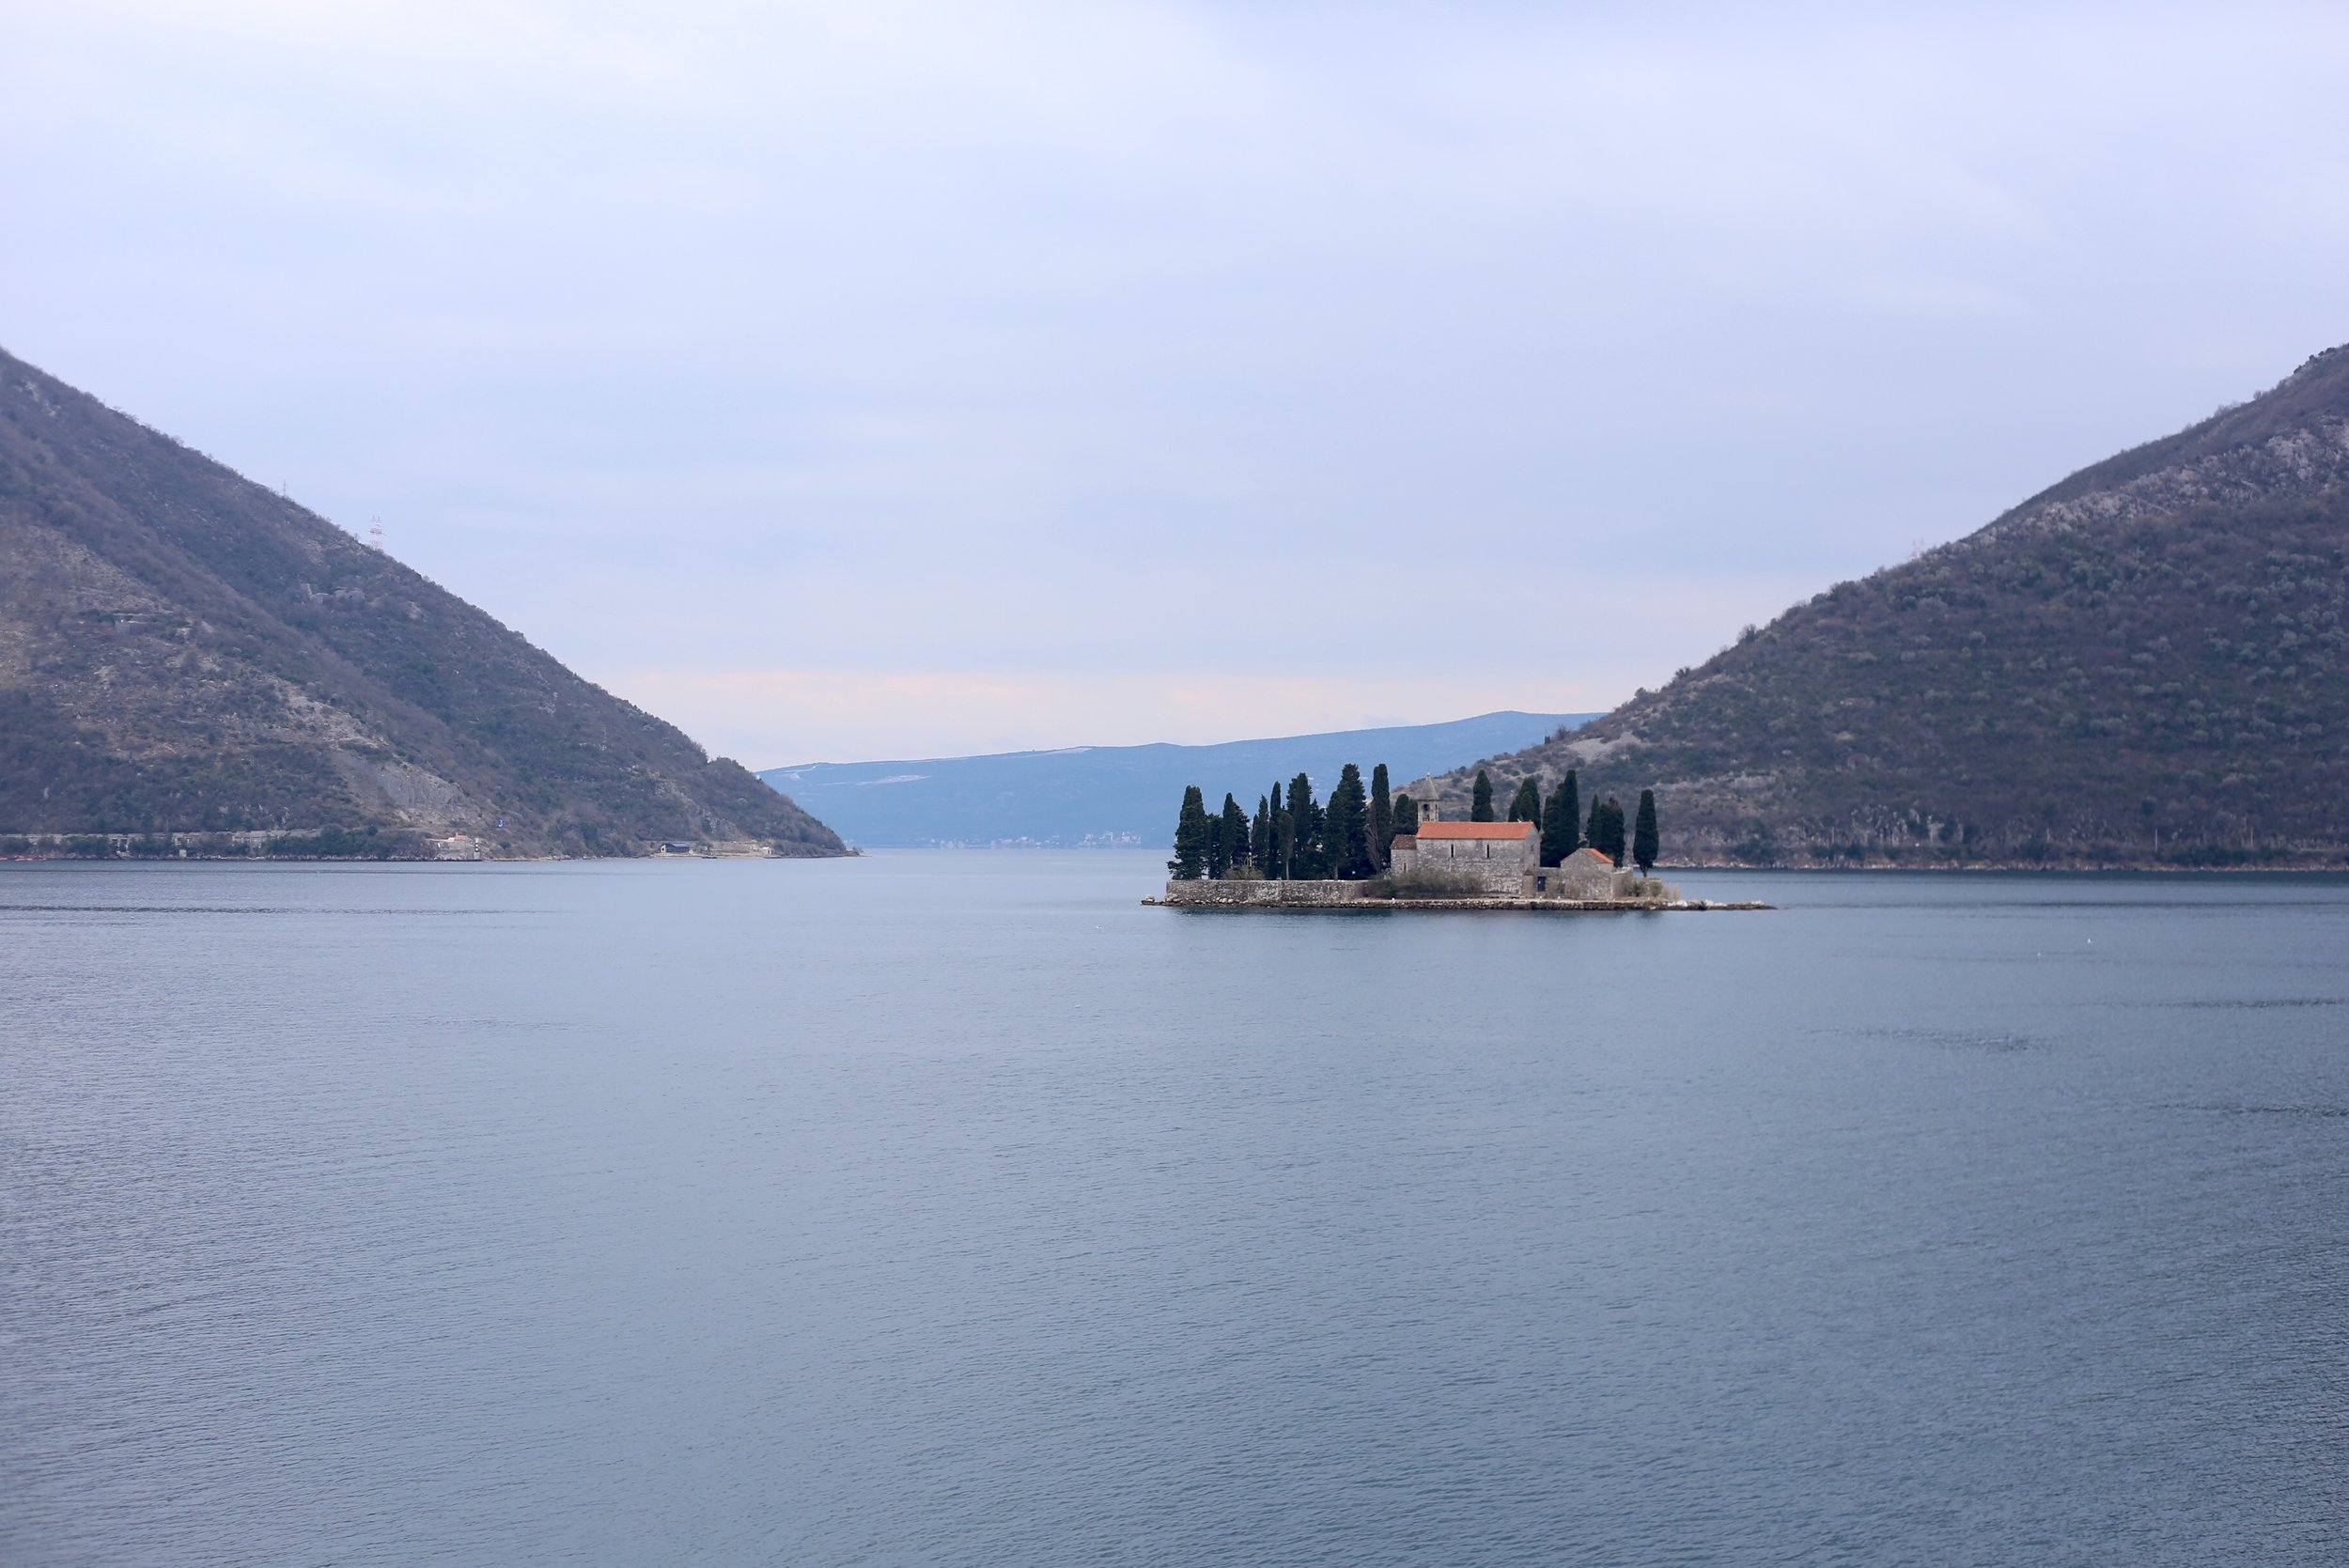 Our lady of the rocks, Montenegro.